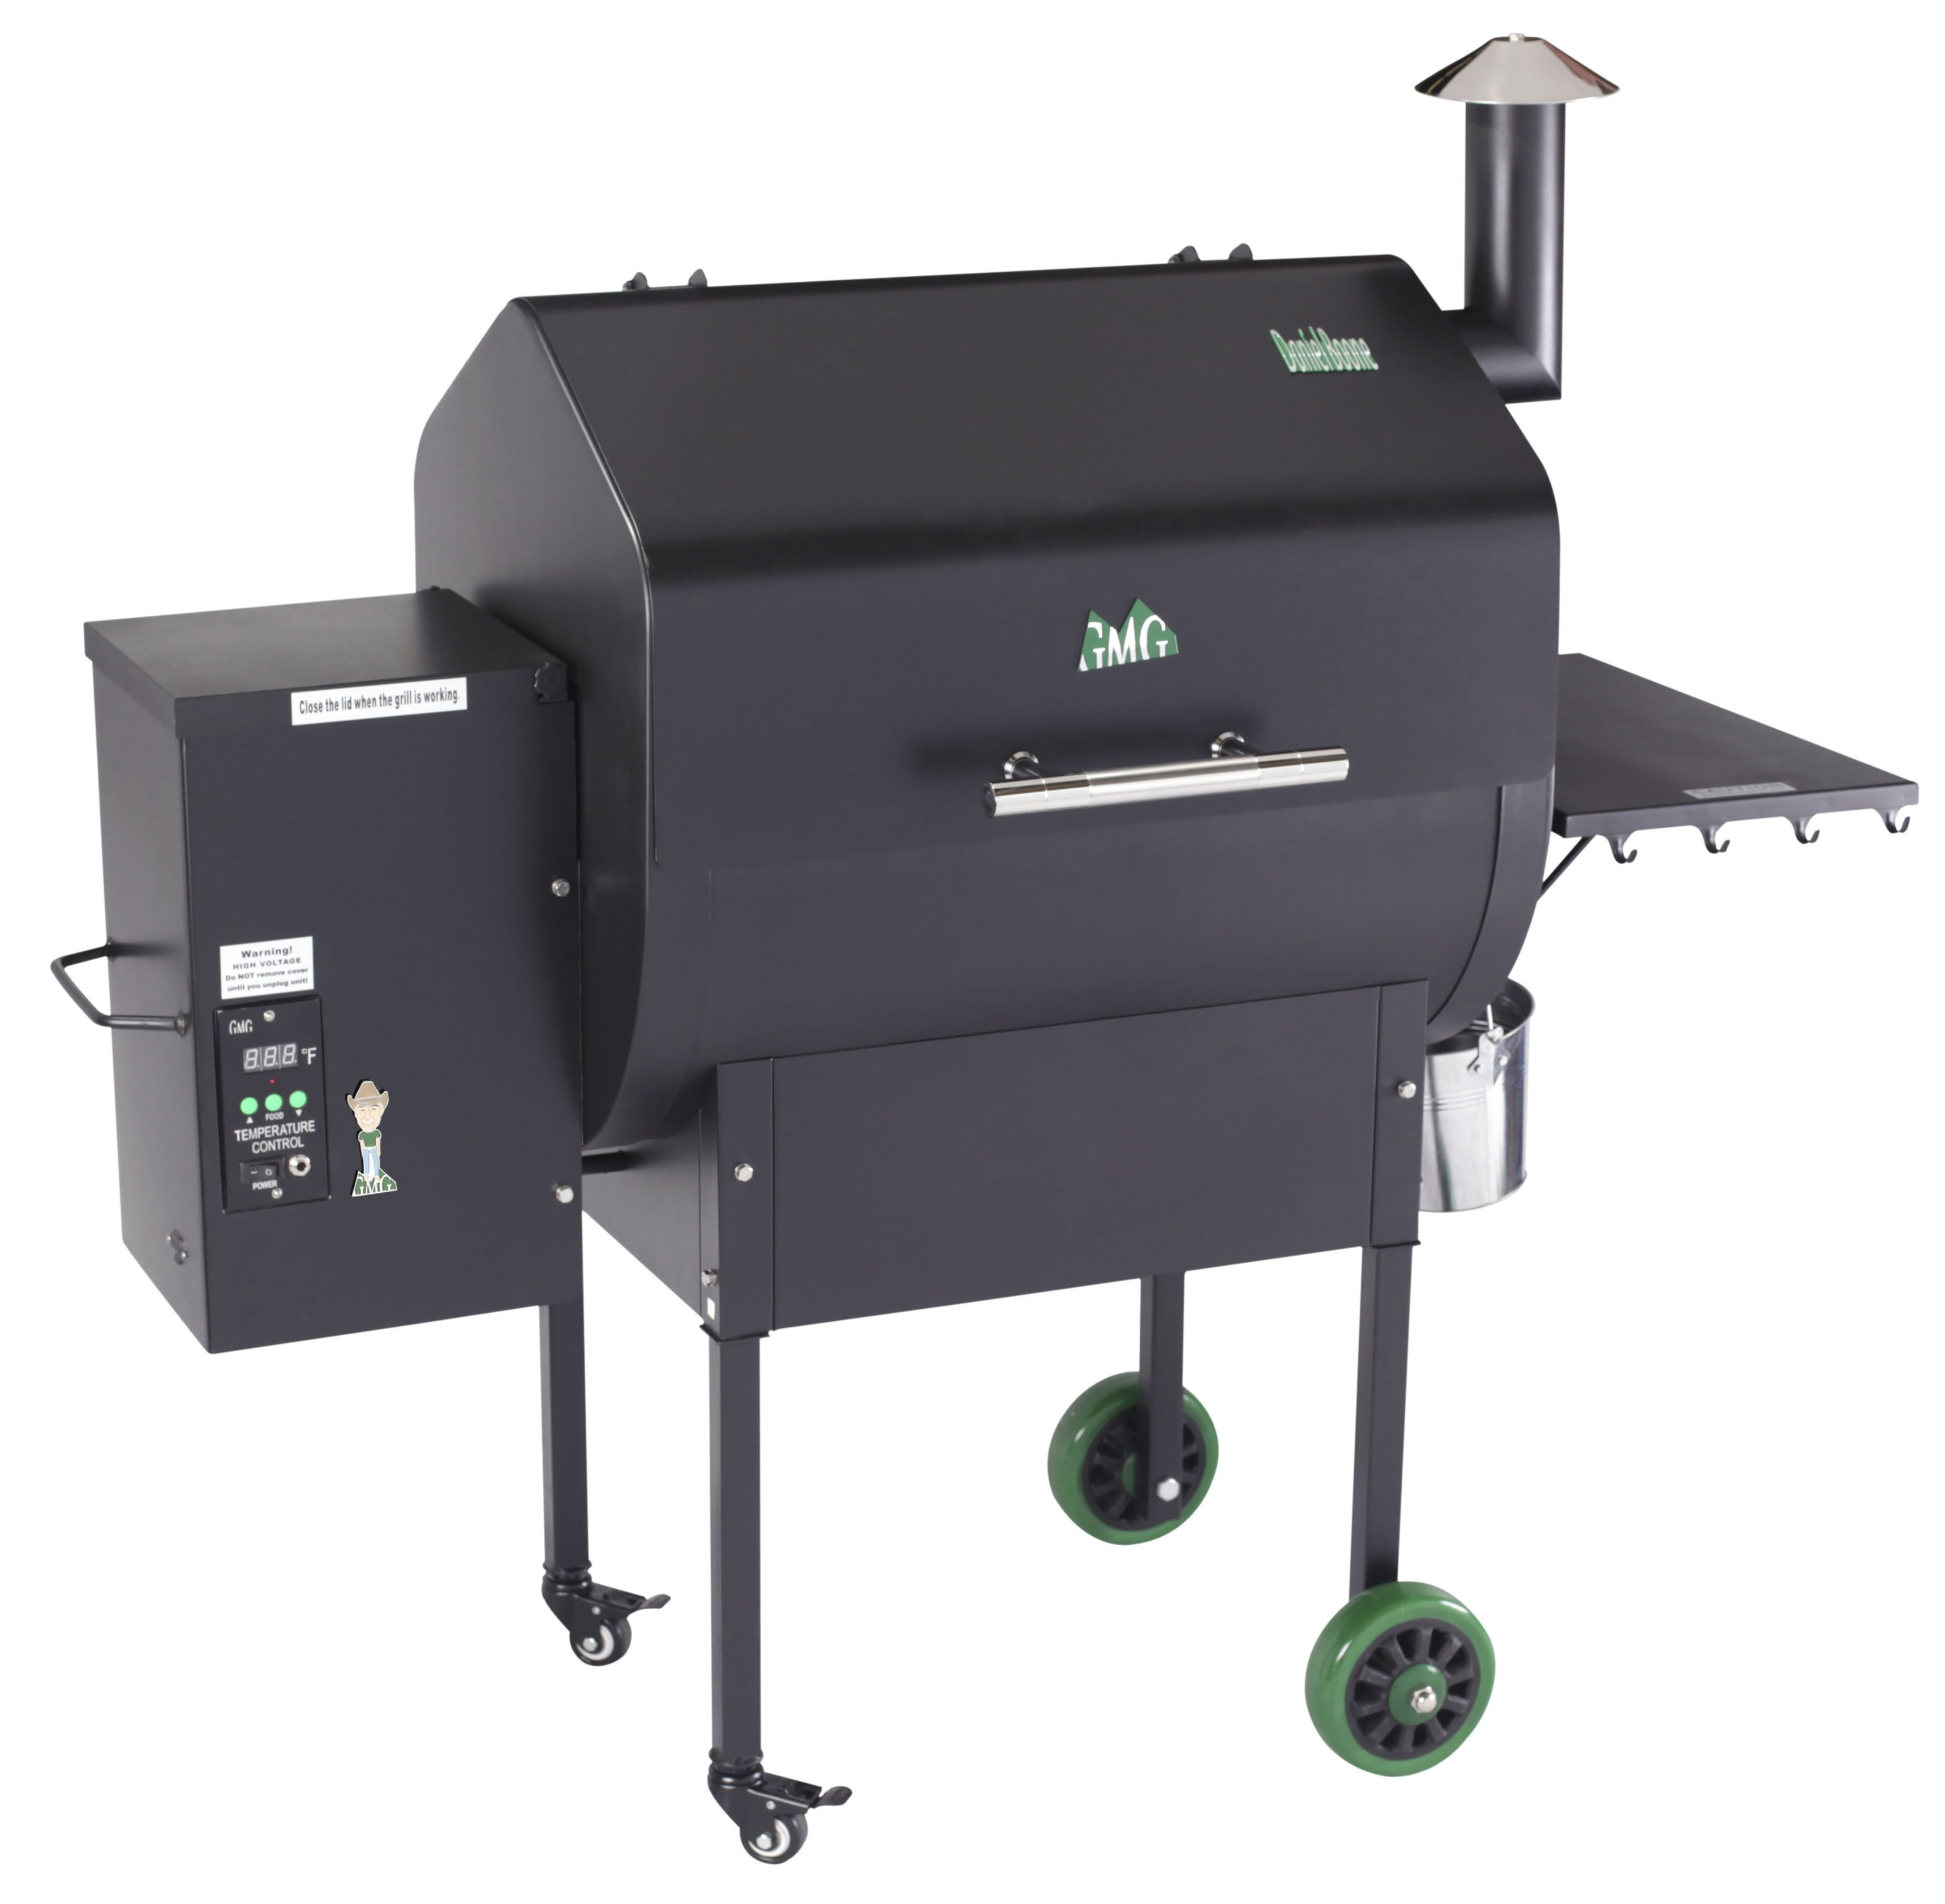 Lovely Backyard Smoker Grill Part - 10: Green Mountain Grills Pellet Smoker - Daniel Boone WiFi Will Have You  Smoking Like A Professional In No Time. Easy To Use Pellets Make This  Pellet Smoker